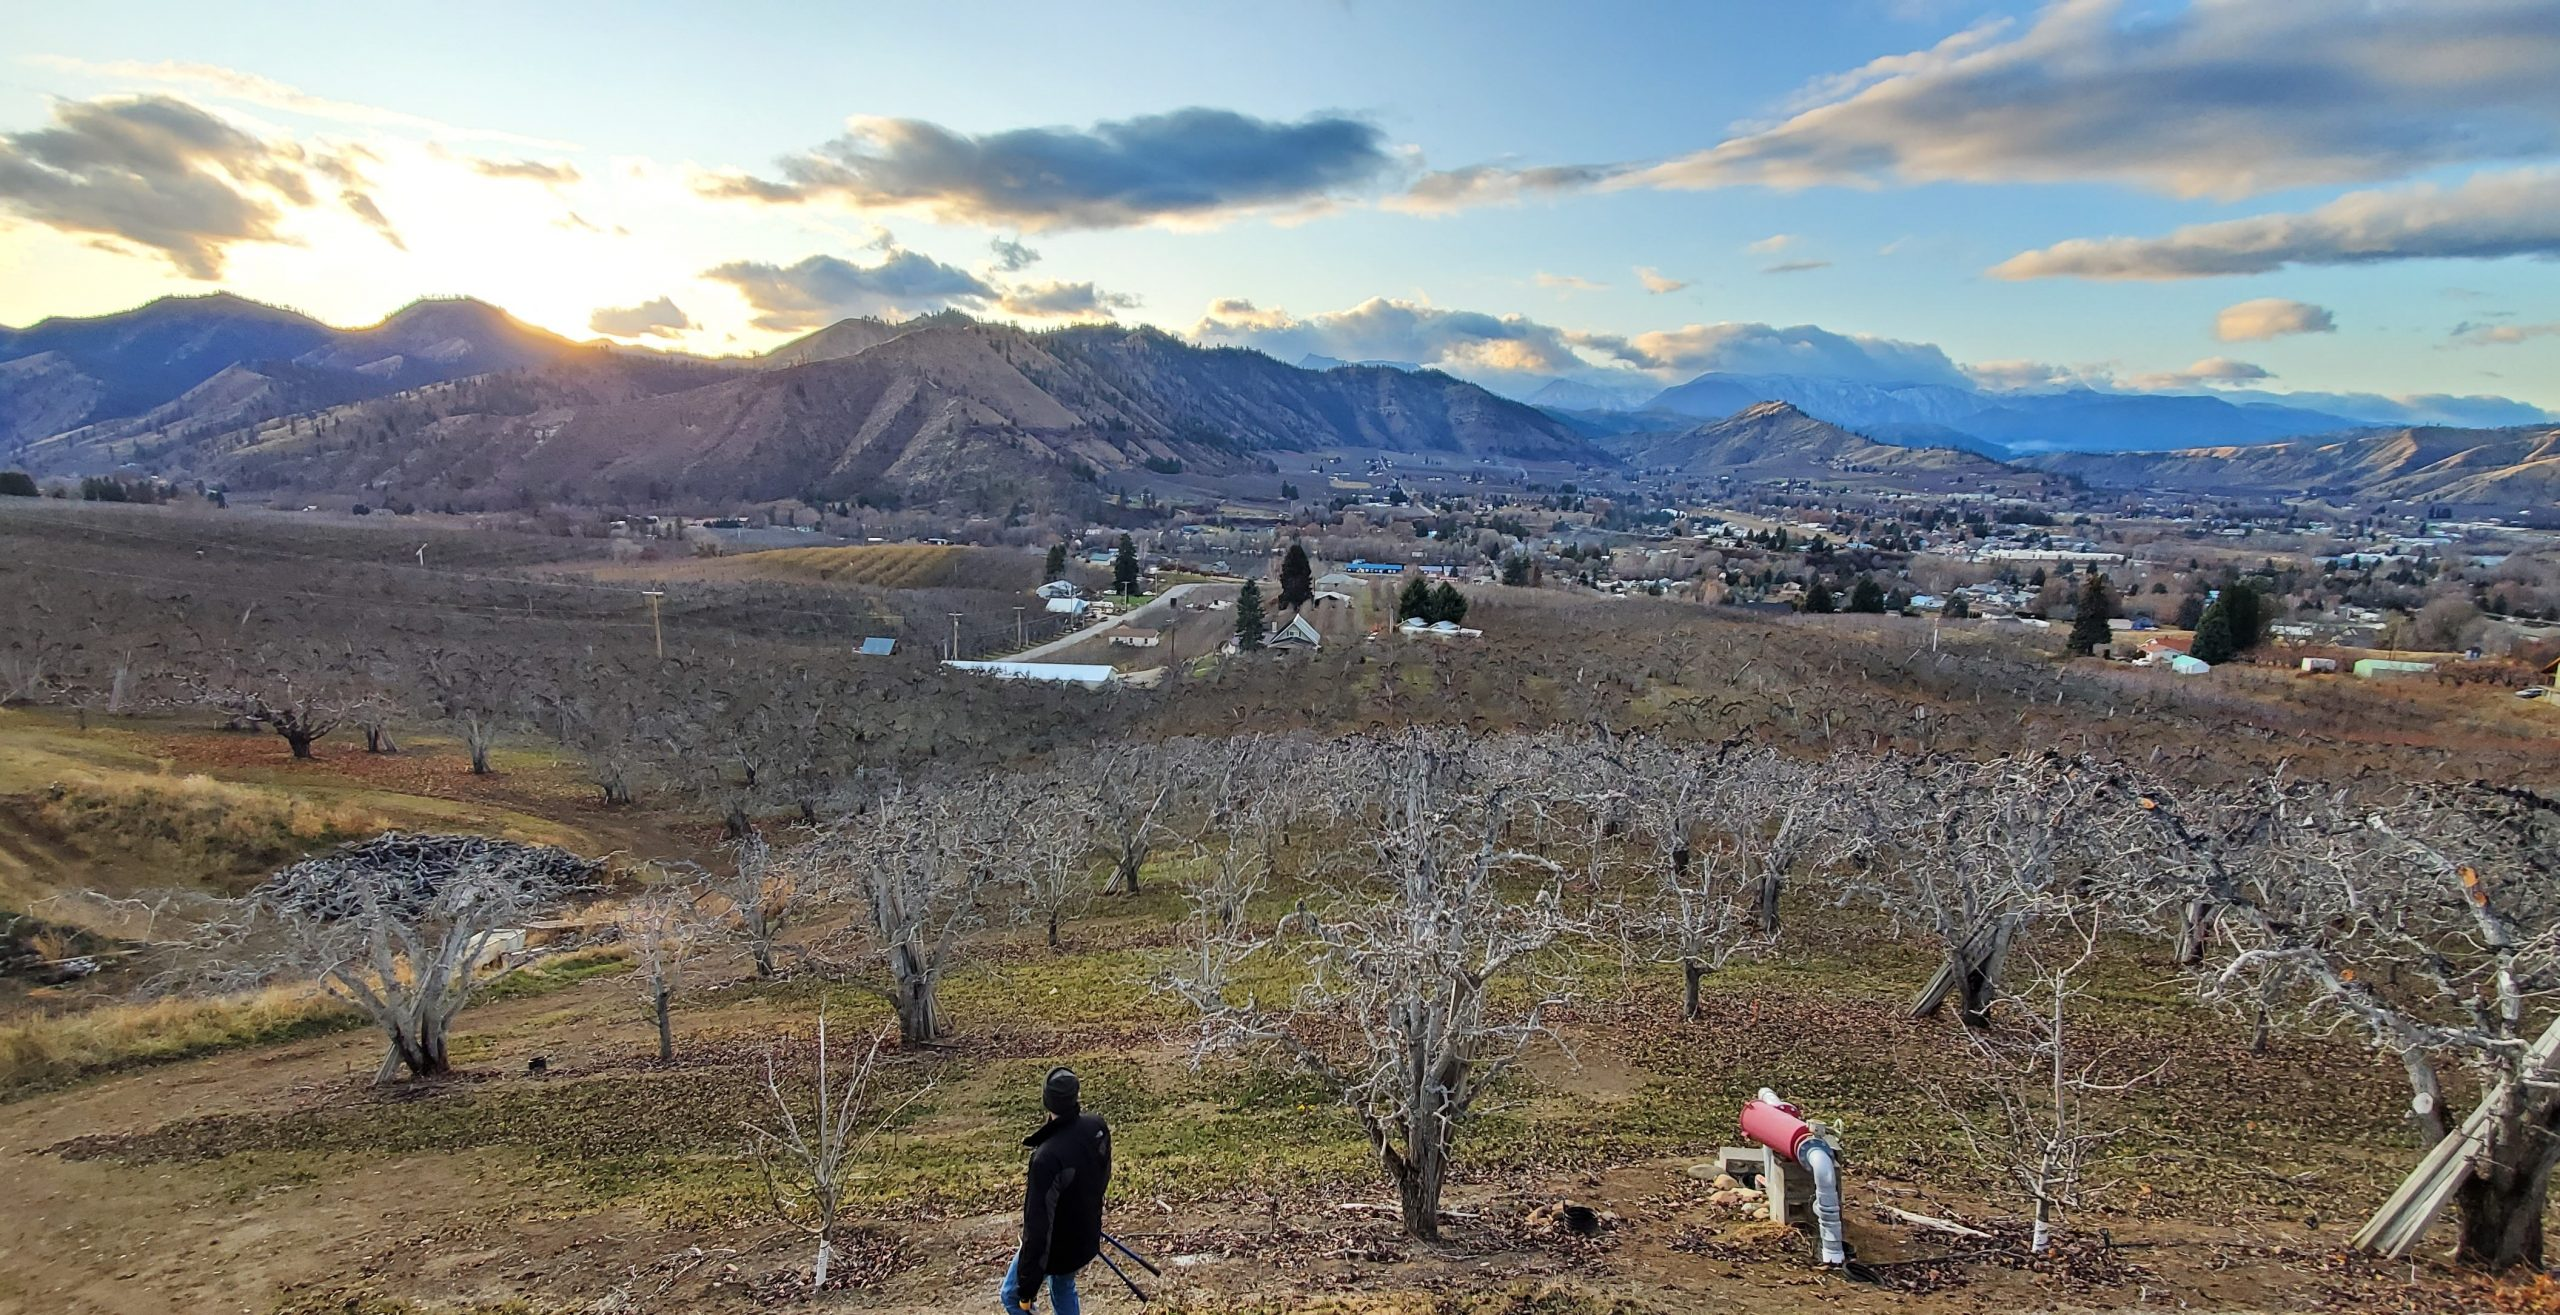 panoramic view of a pear orchard in the foreground with the sun setting behind mountains in the distance